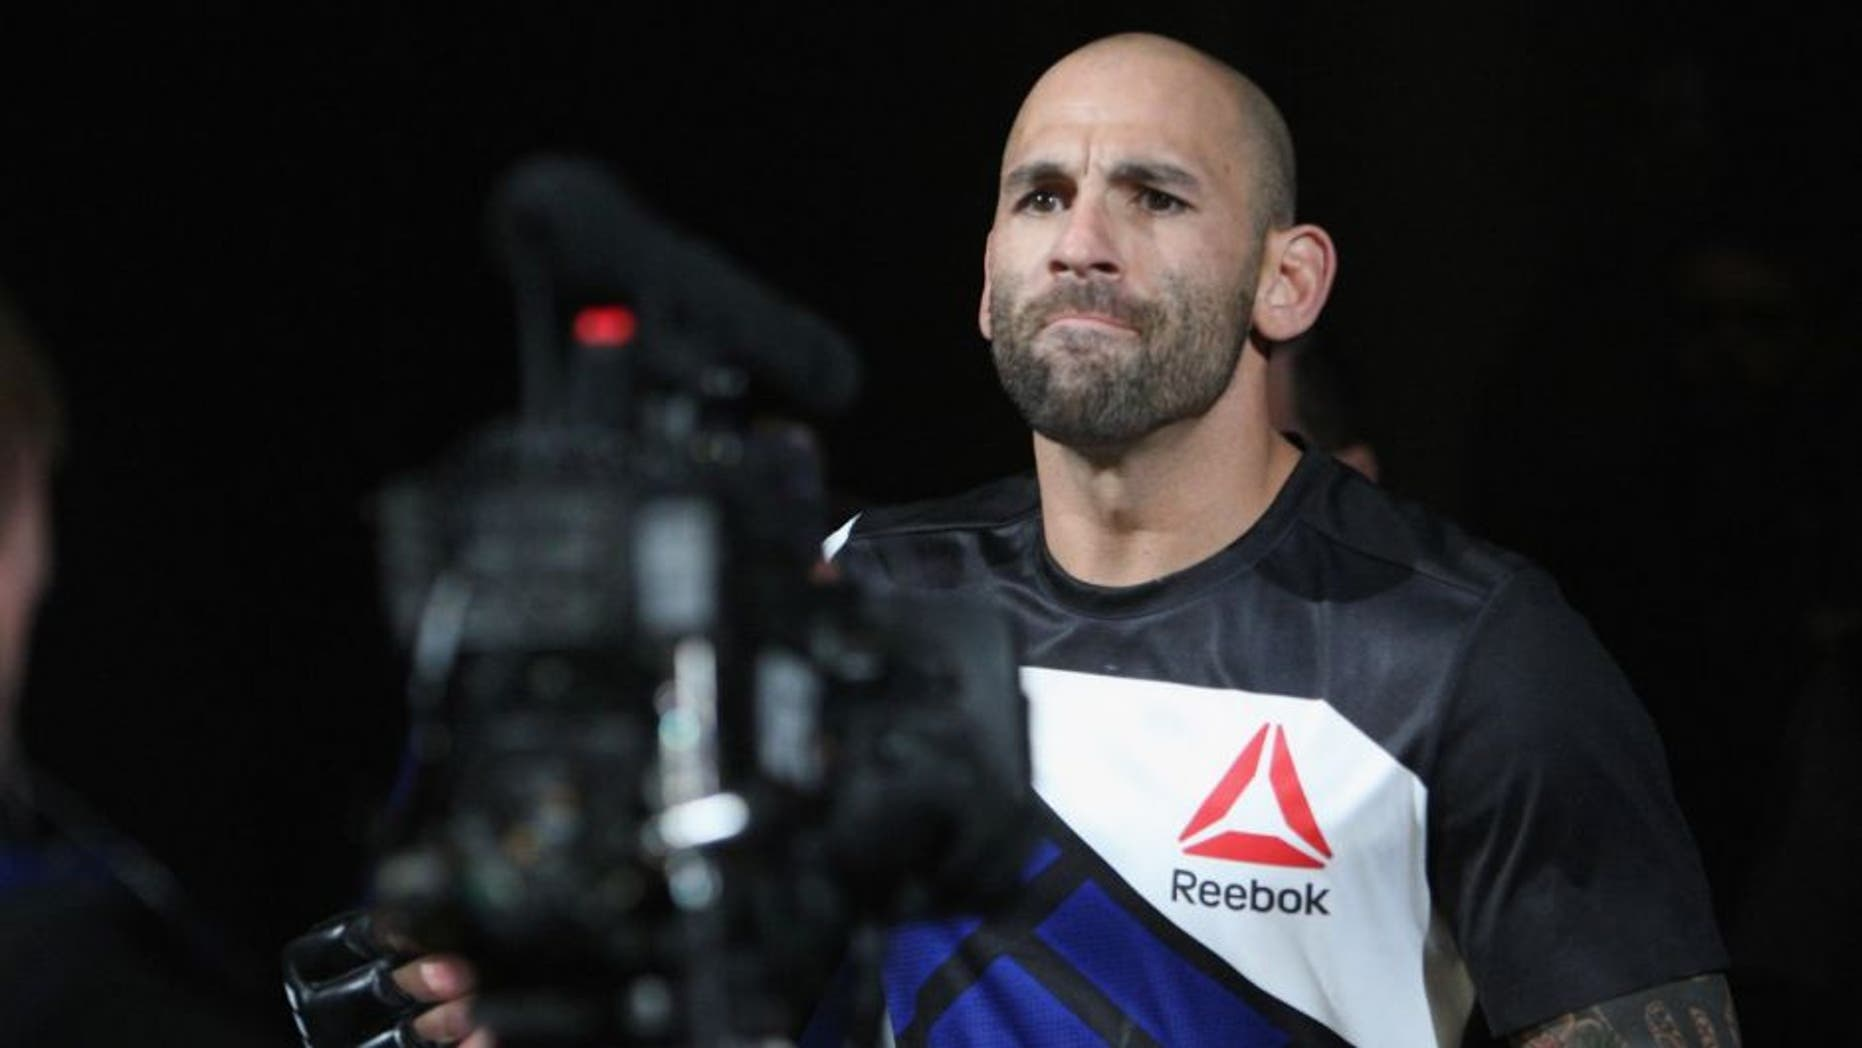 LAS VEGAS, NV - JULY 12: George Sullivan enters the Octagon for his fight against Dominic Waters in their welterweight bout during the Ultimate Fighter Finale inside MGM Grand Garden Arena on July 12, 2015 in Las Vegas, Nevada. (Photo by Mitch Viquez/Zuffa LLC/Zuffa LLC via Getty Images)